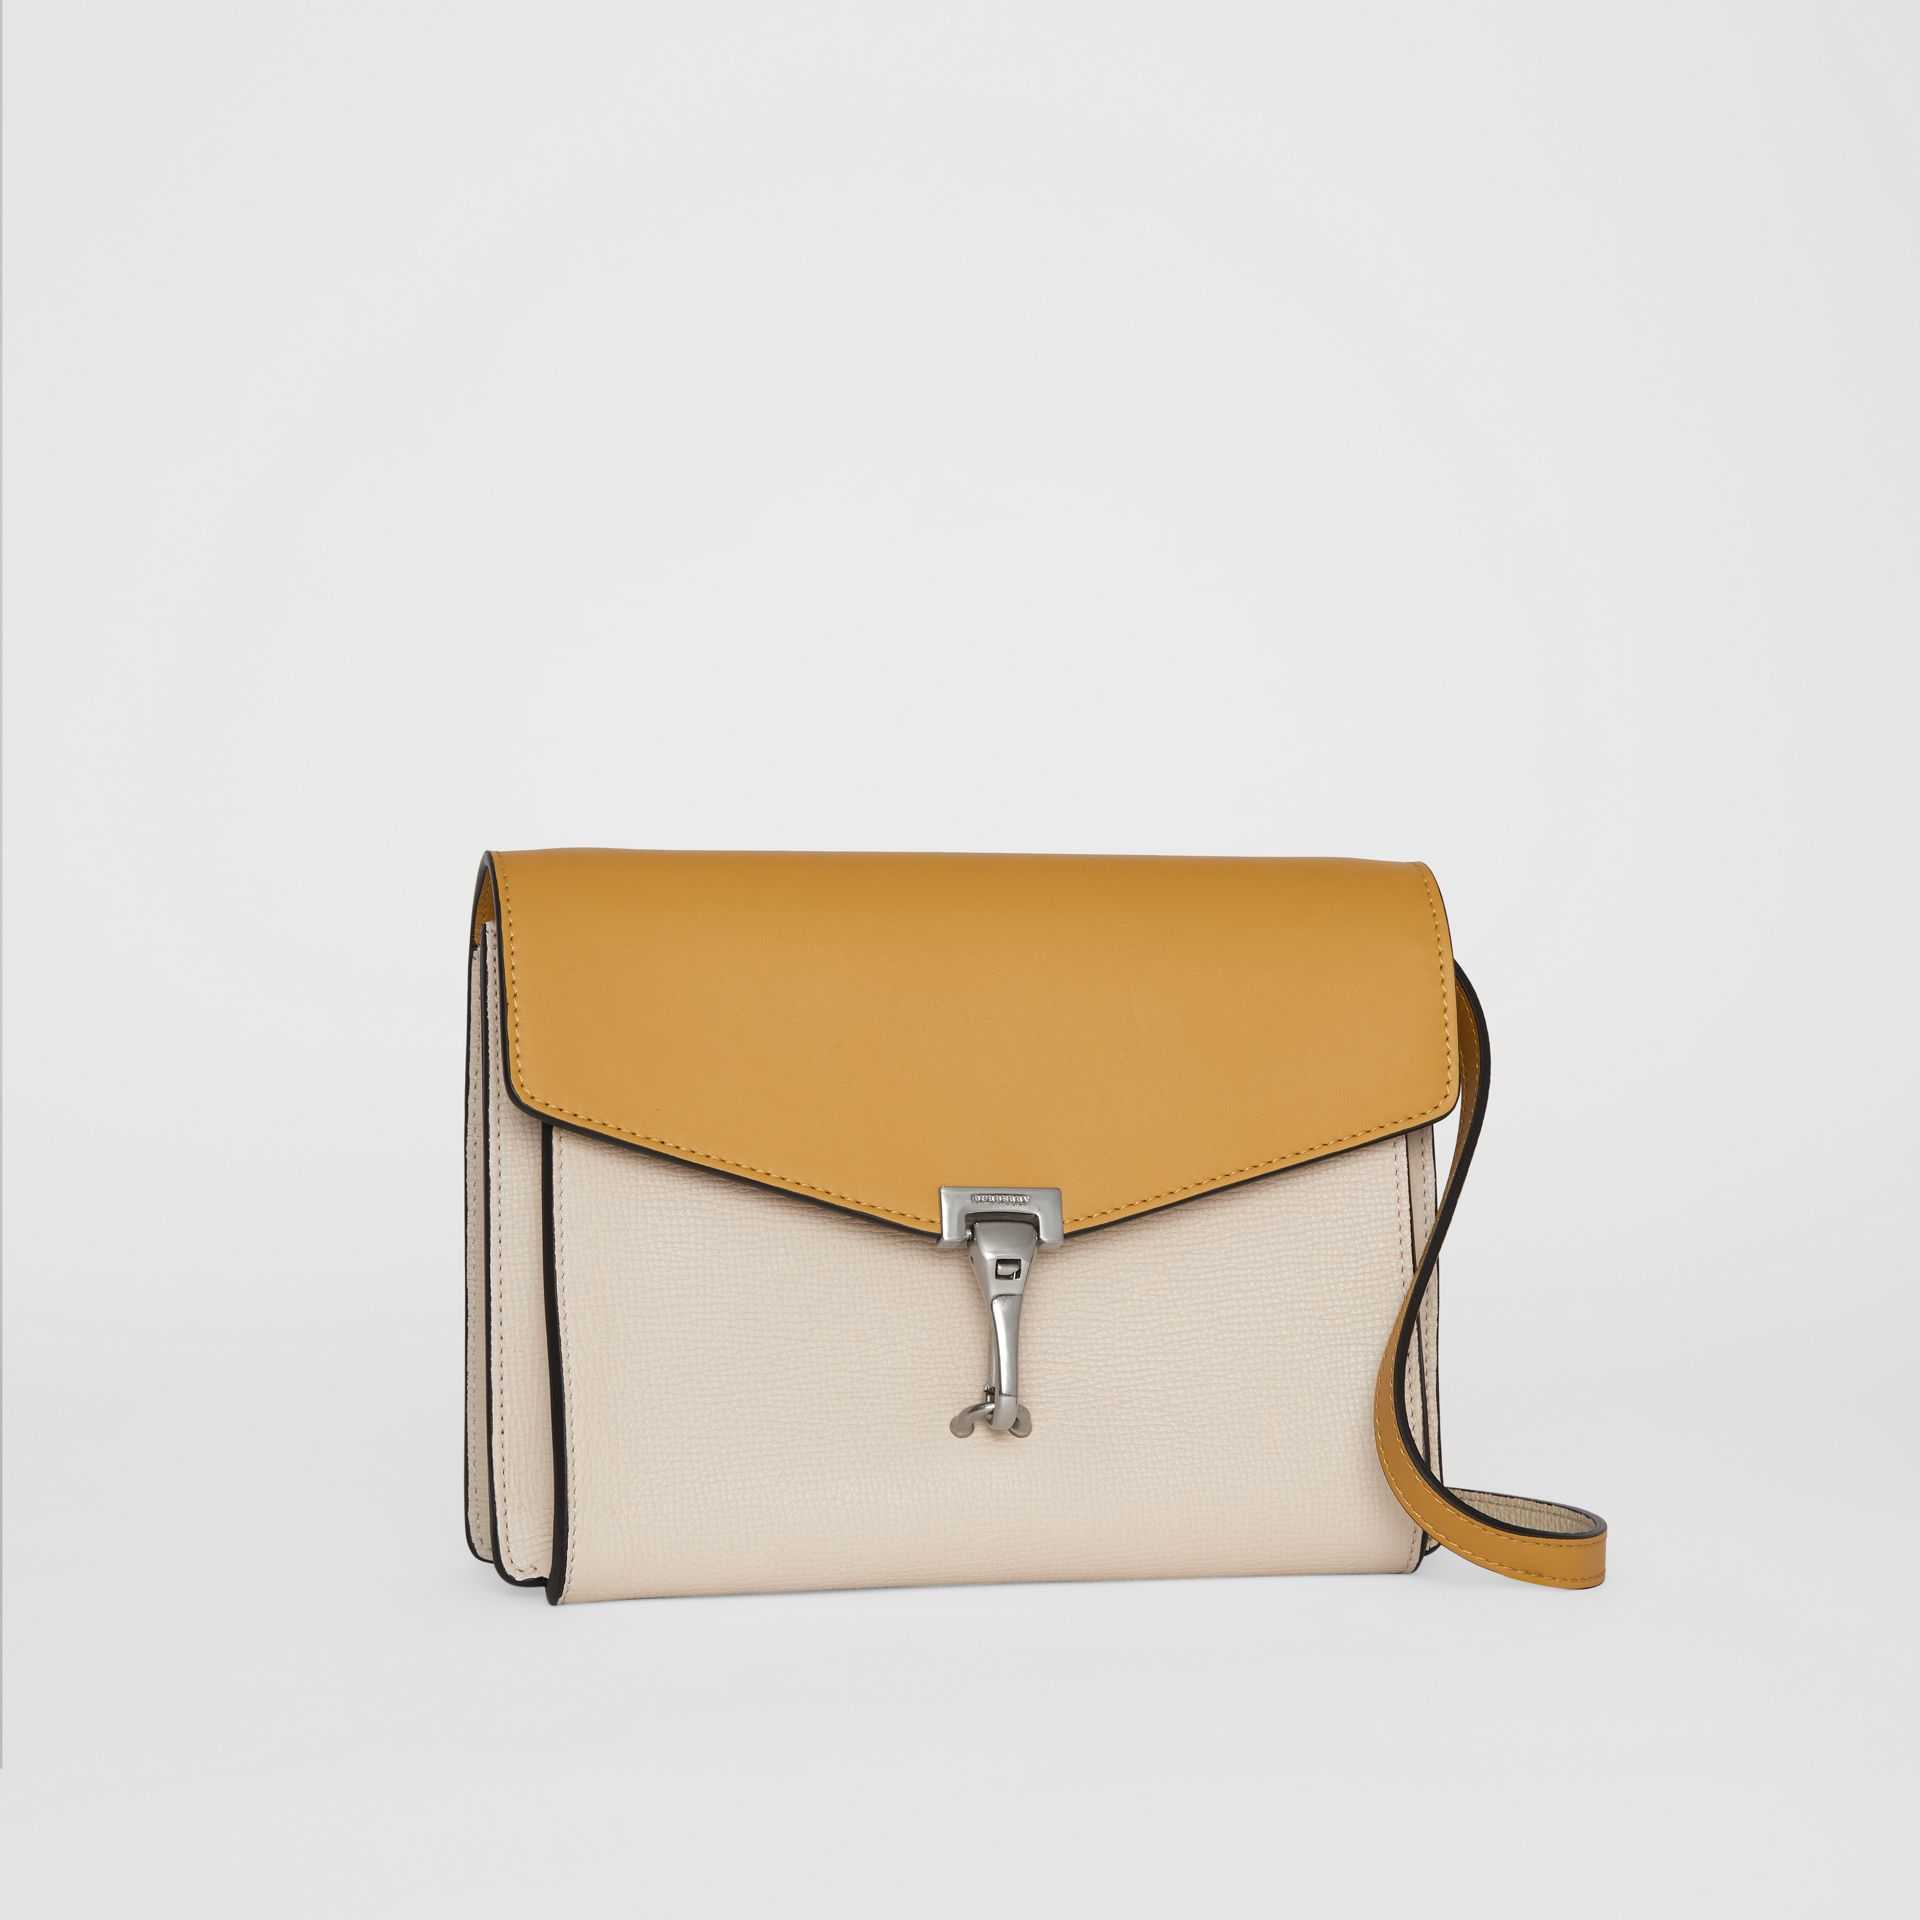 Two-tone Leather Crossbody Bag in Limestone/cornflower Yellow - Women | Burberry Singapore - gallery image 6